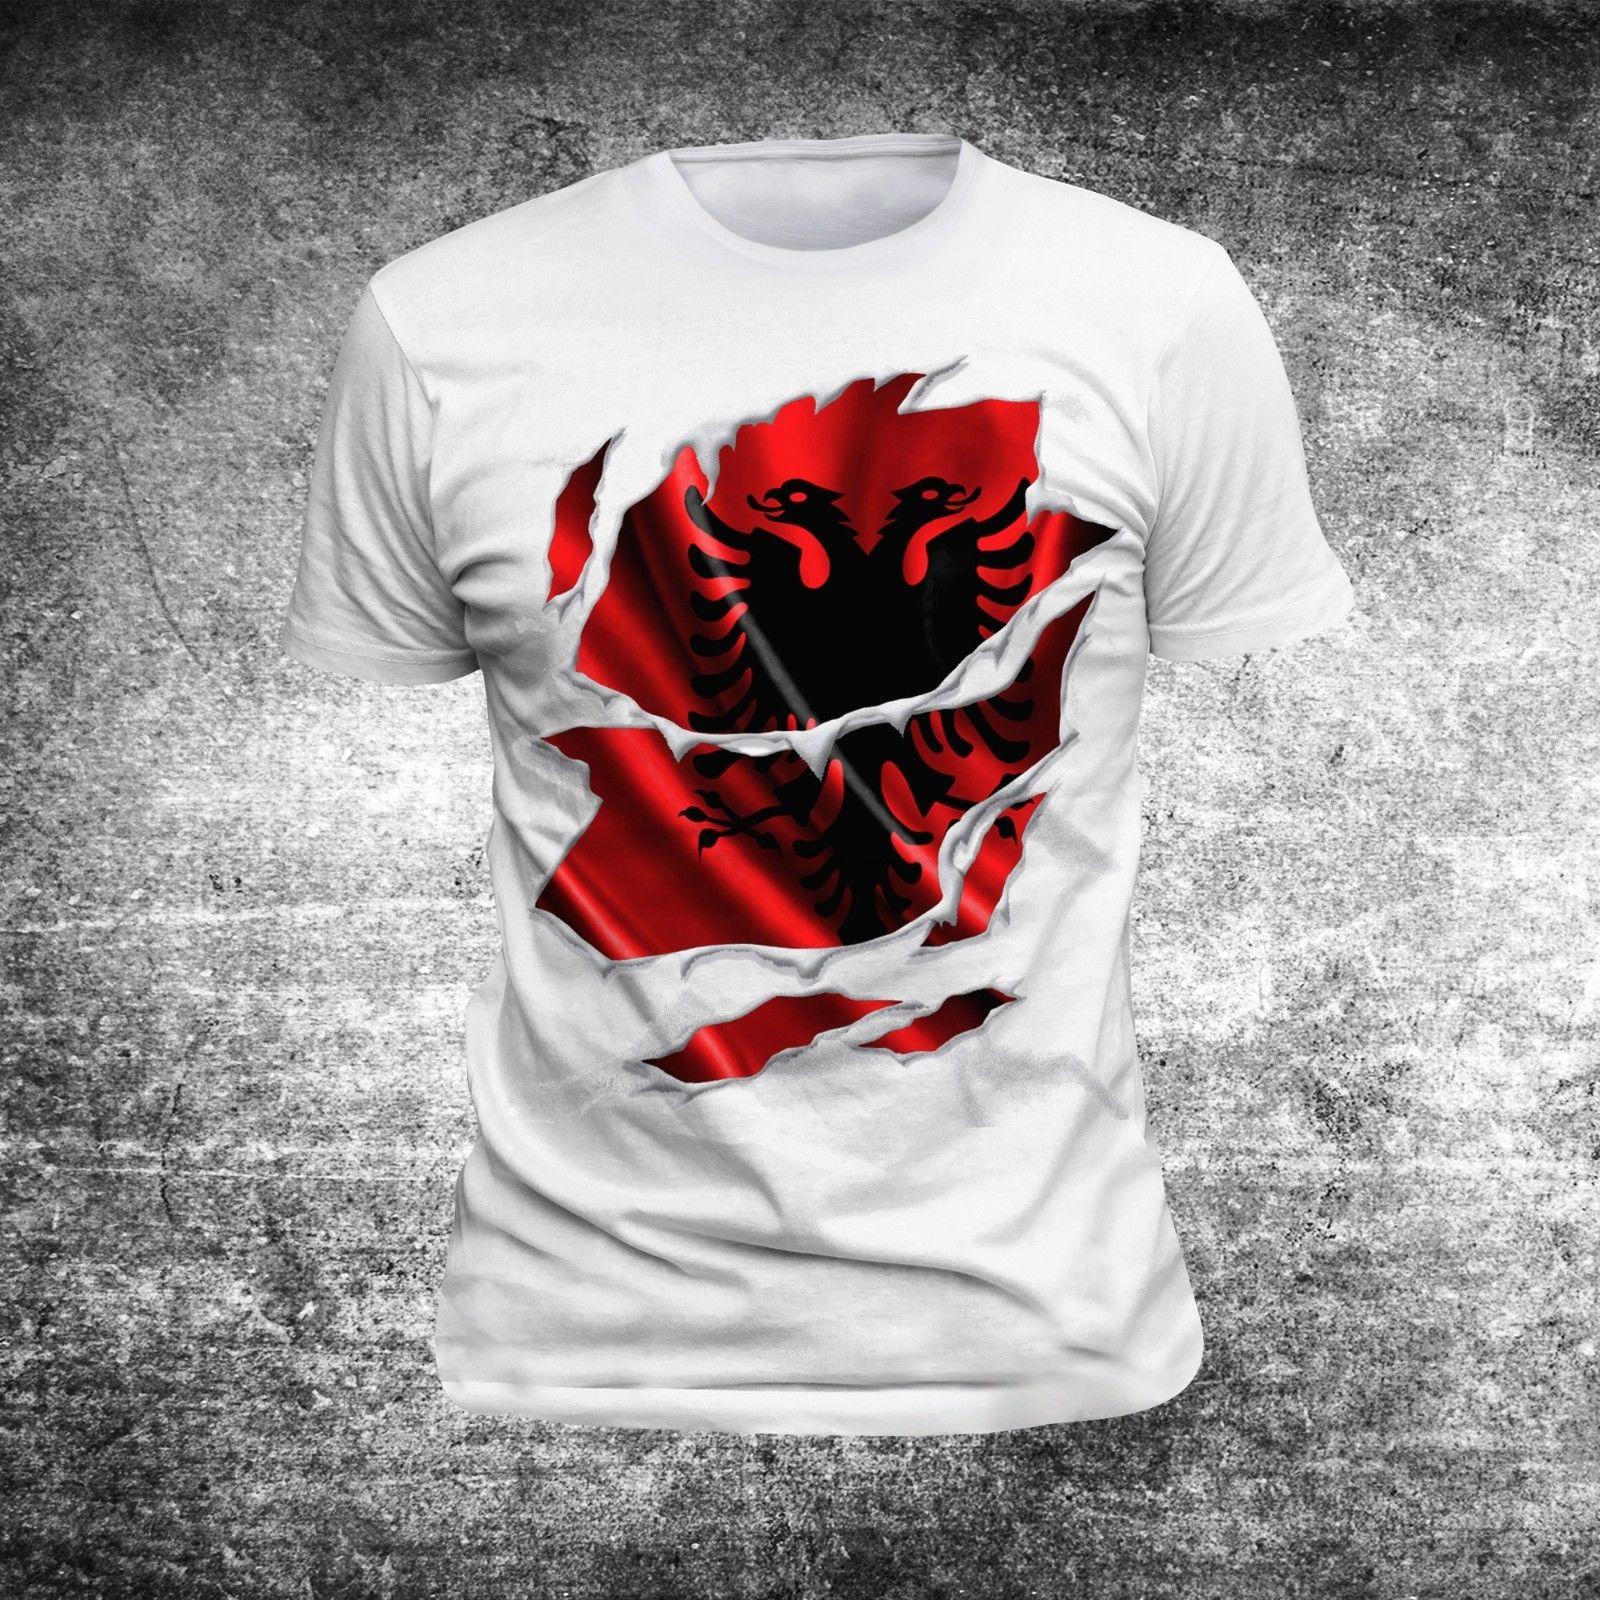 New Summer Cool TShirt Men O-neck T-shirt Albanien Albania Balkan Shirt Kosova Kosovo Flag Cotton T-shirt Tees